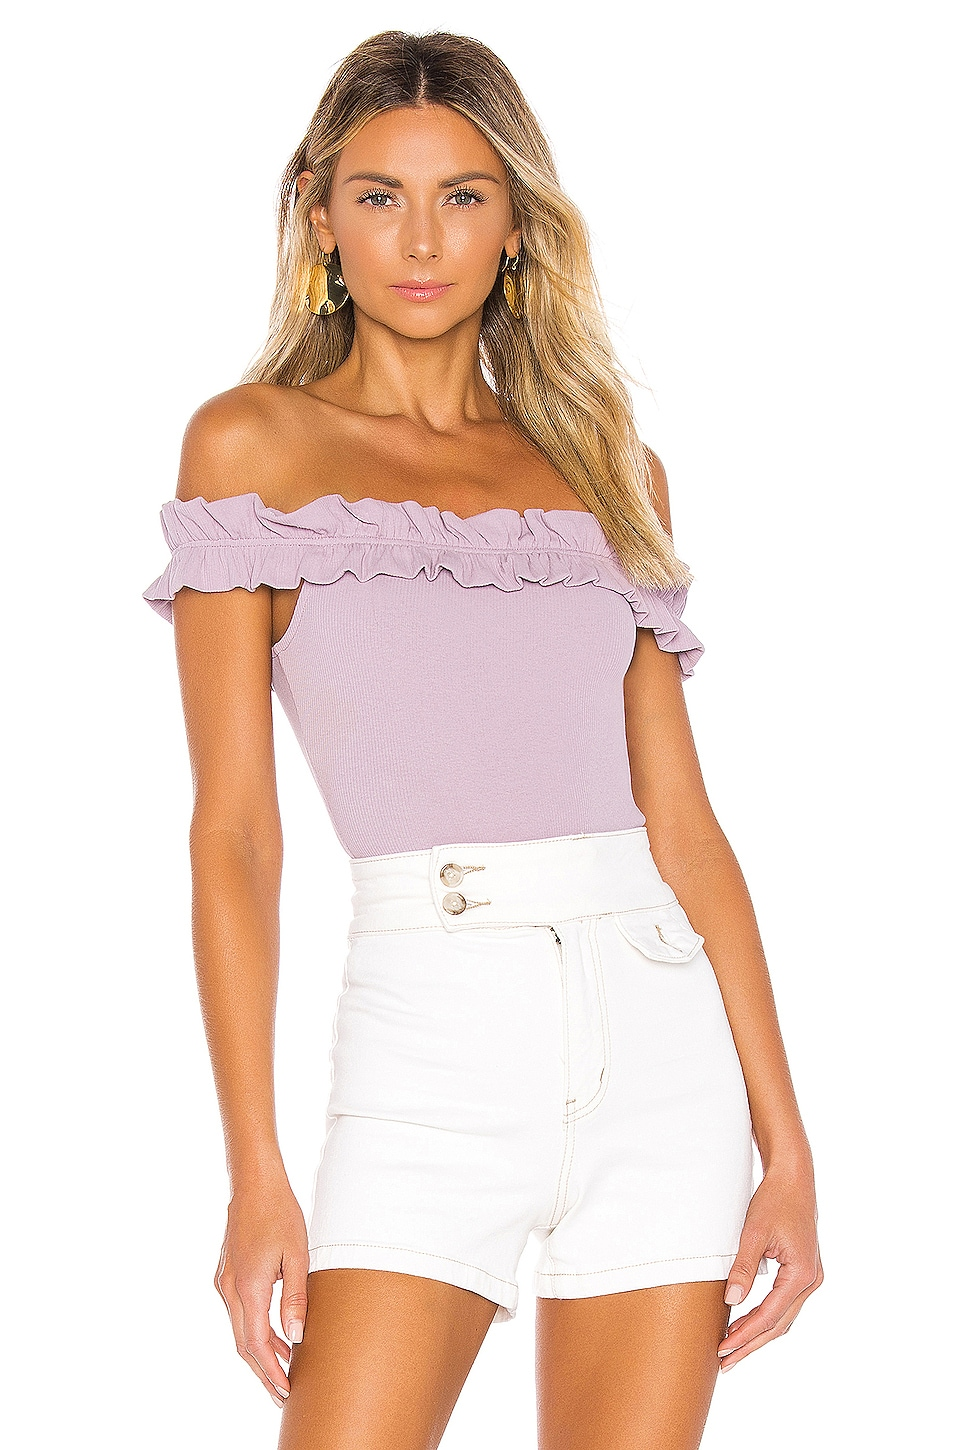 Privacy Please Solange Bodysuit in Lavender